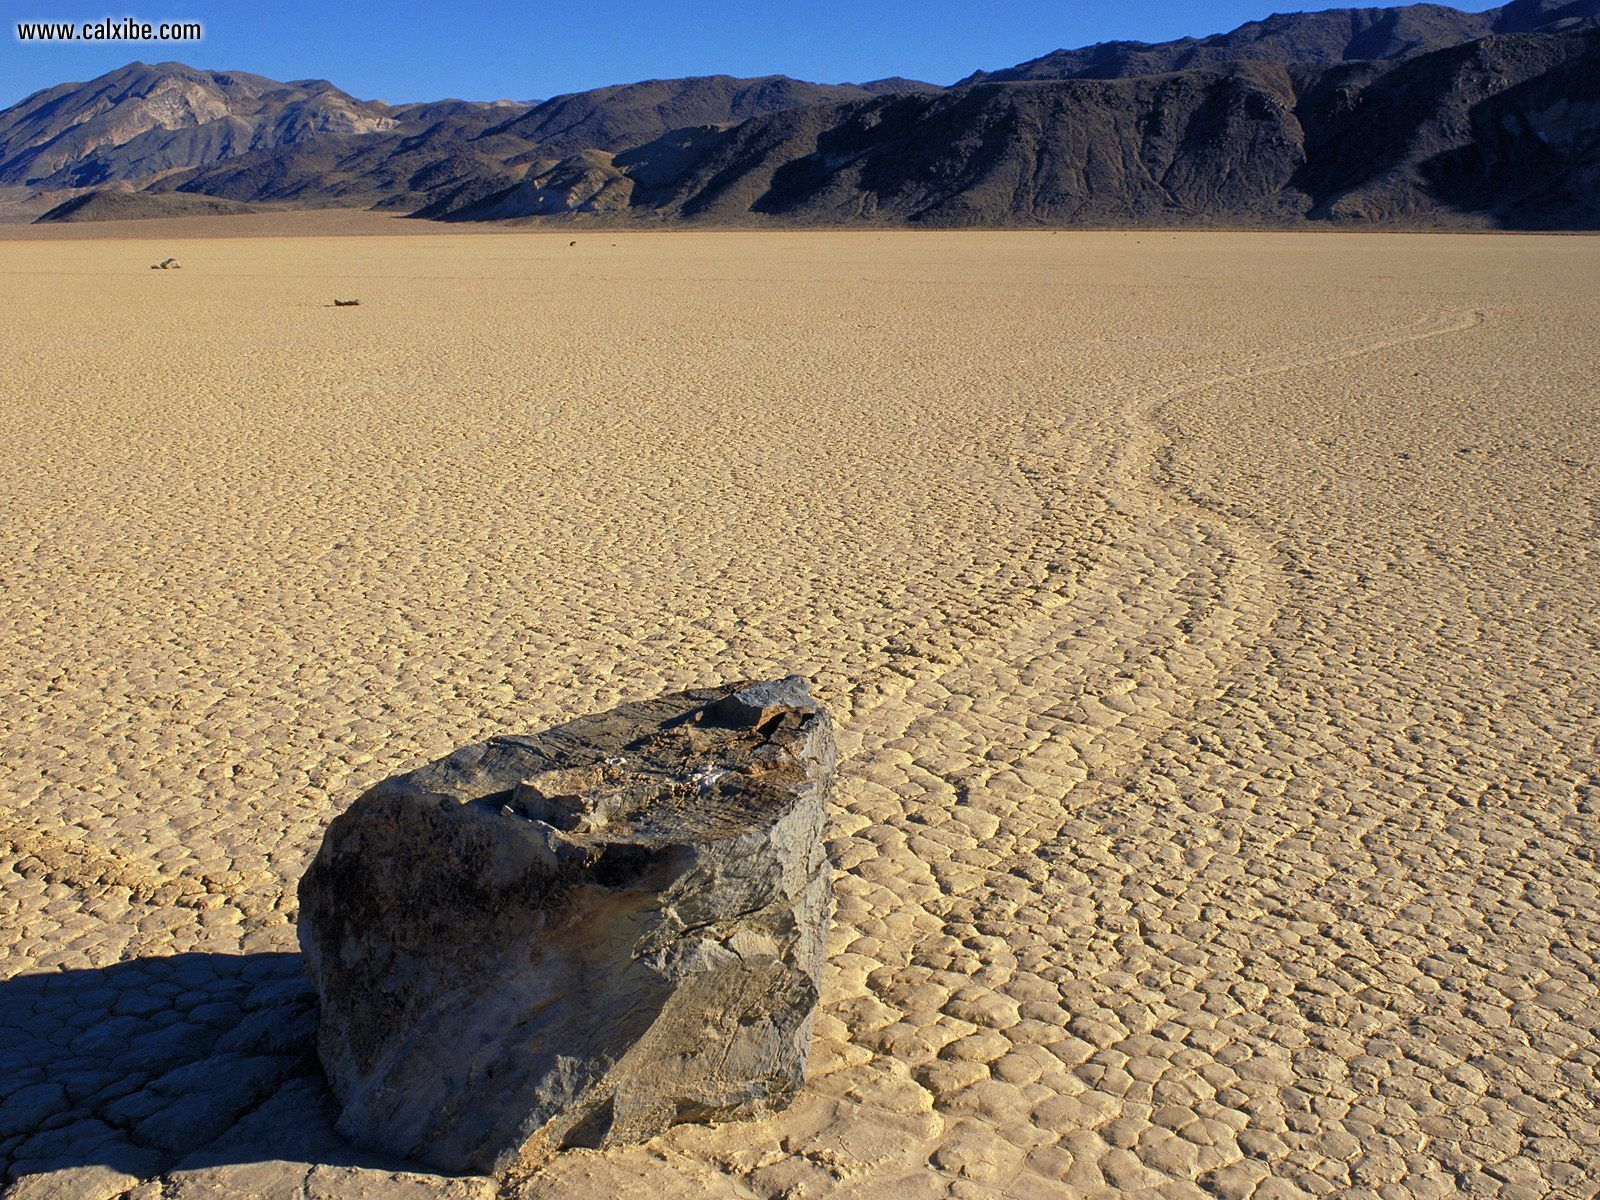 California Iphone 7 Wallpaper California Death Valley Wallpapers High Quality Download